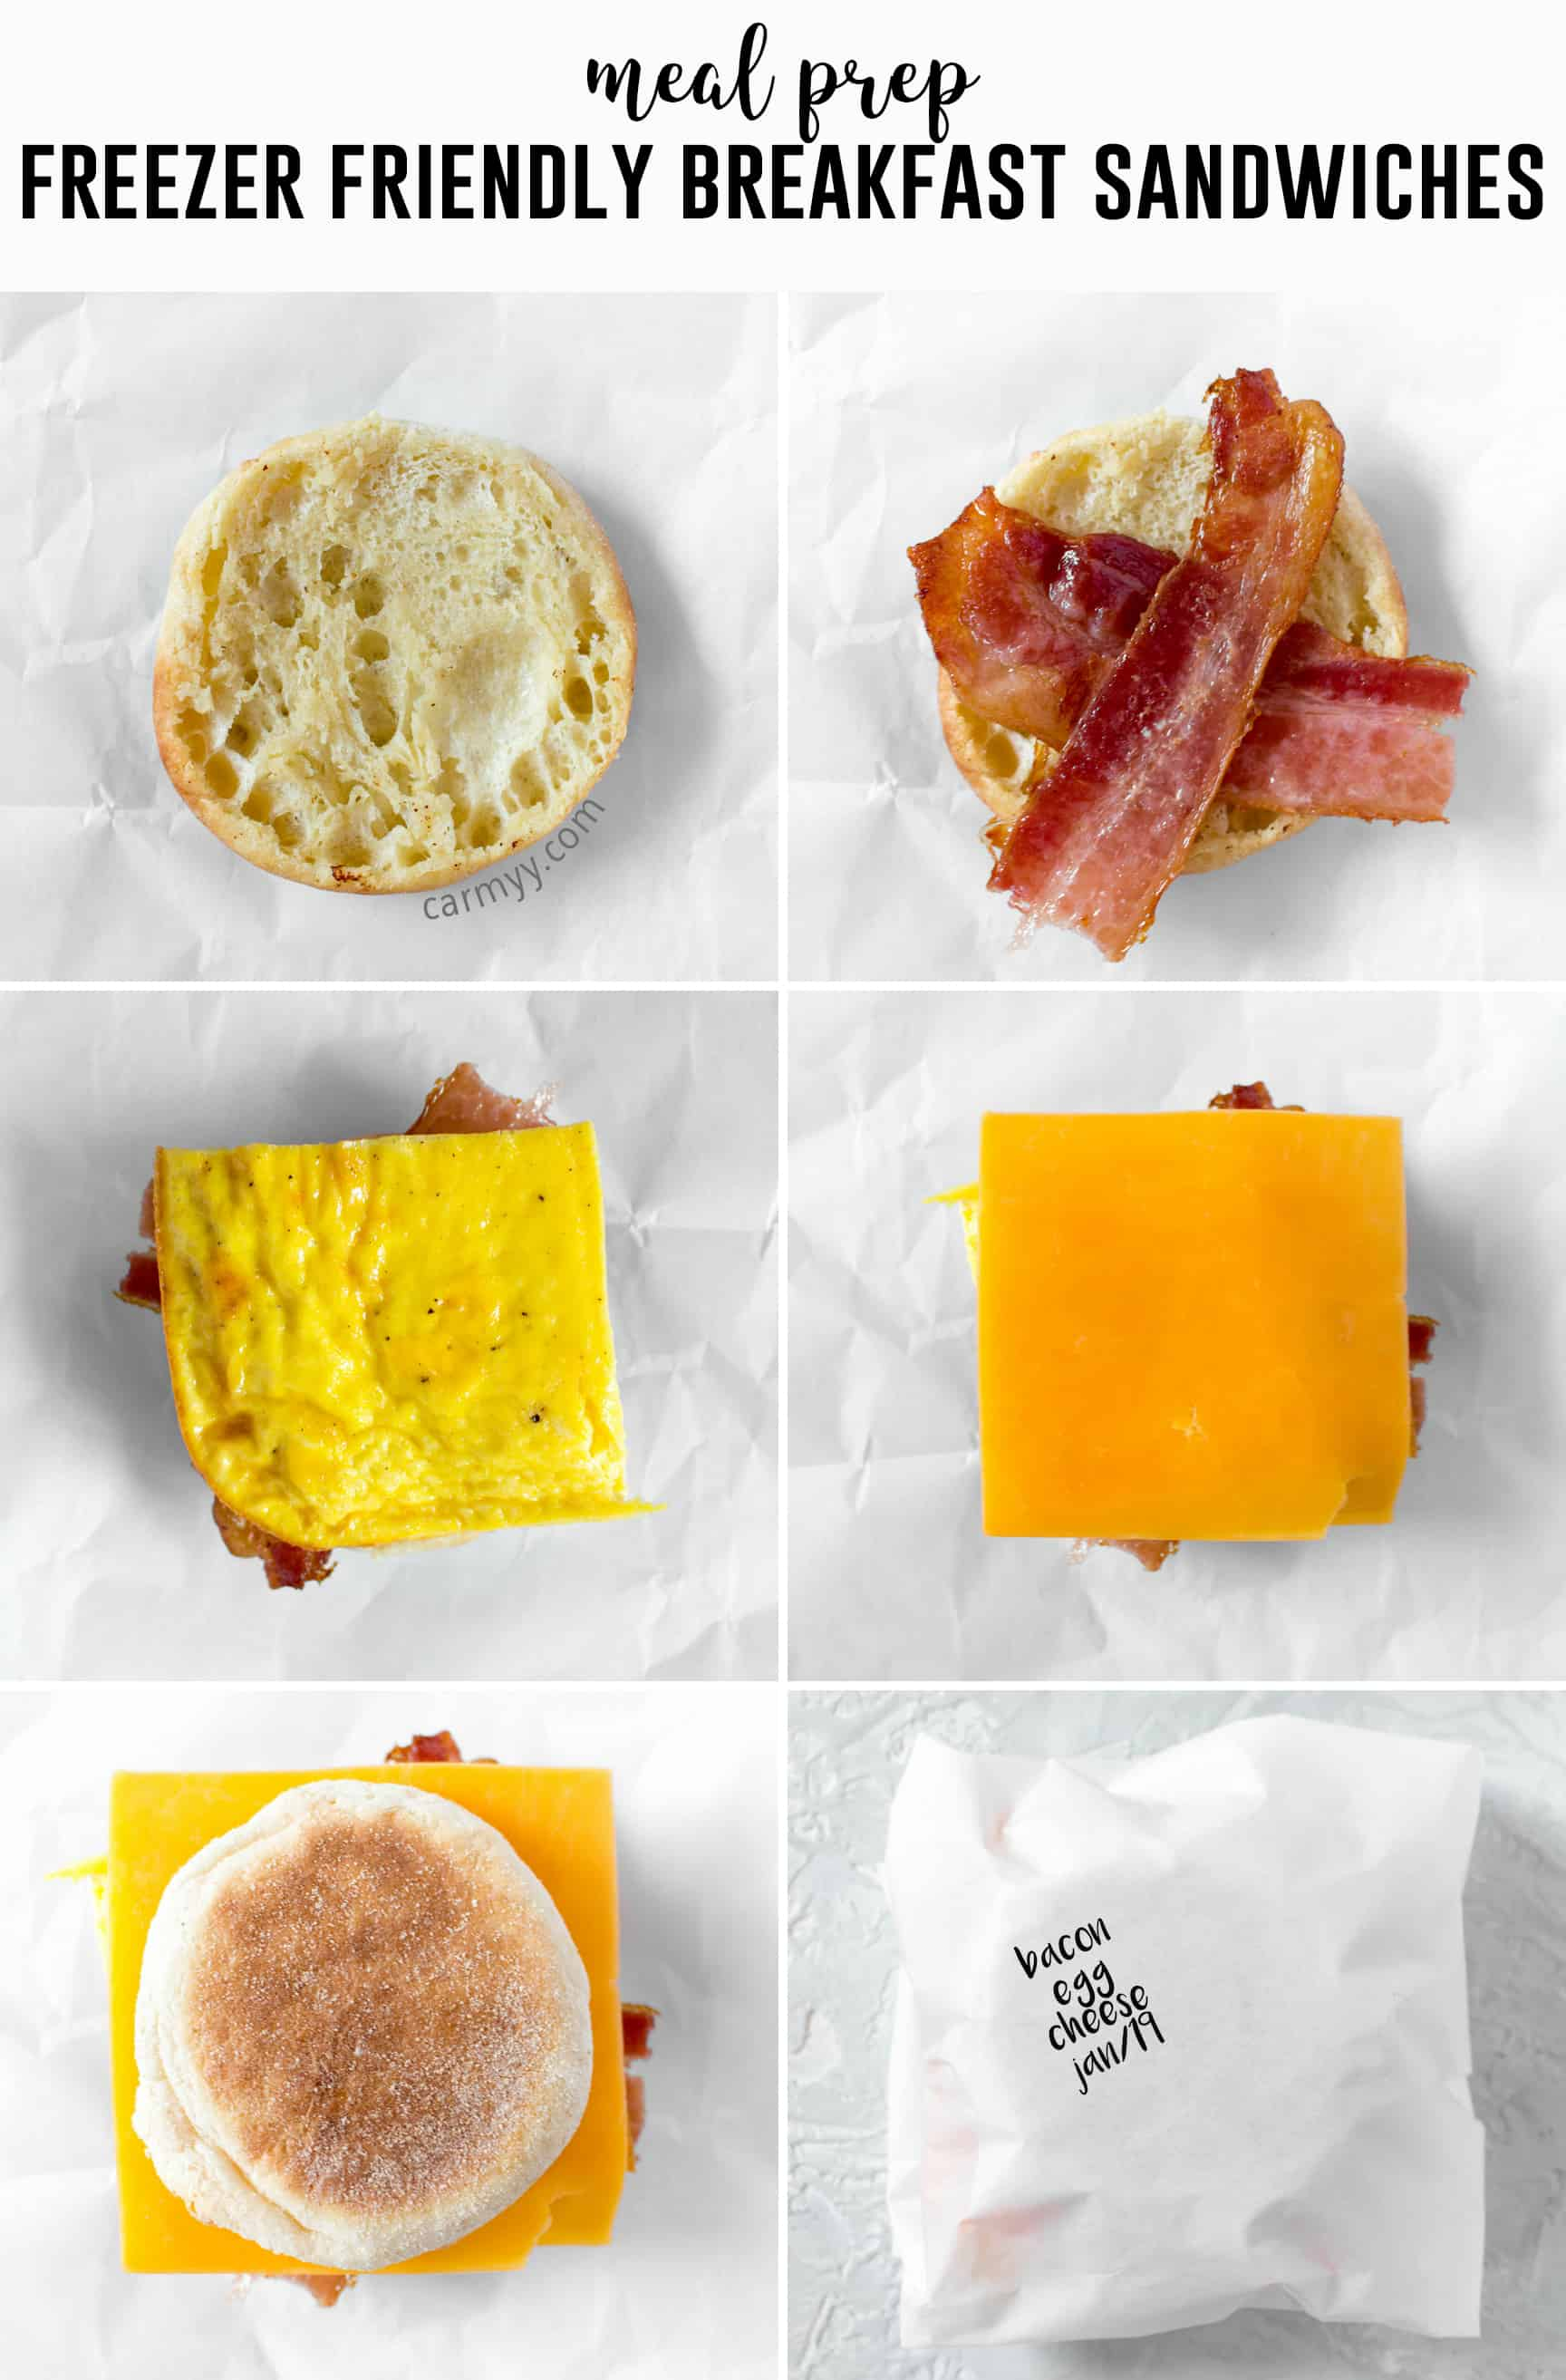 Skip the drive thru in the morning and make your own freezer friendly breakfast egg sandwiches. Make a batch, freeze it, and have a sandwich for breakfast everyday!